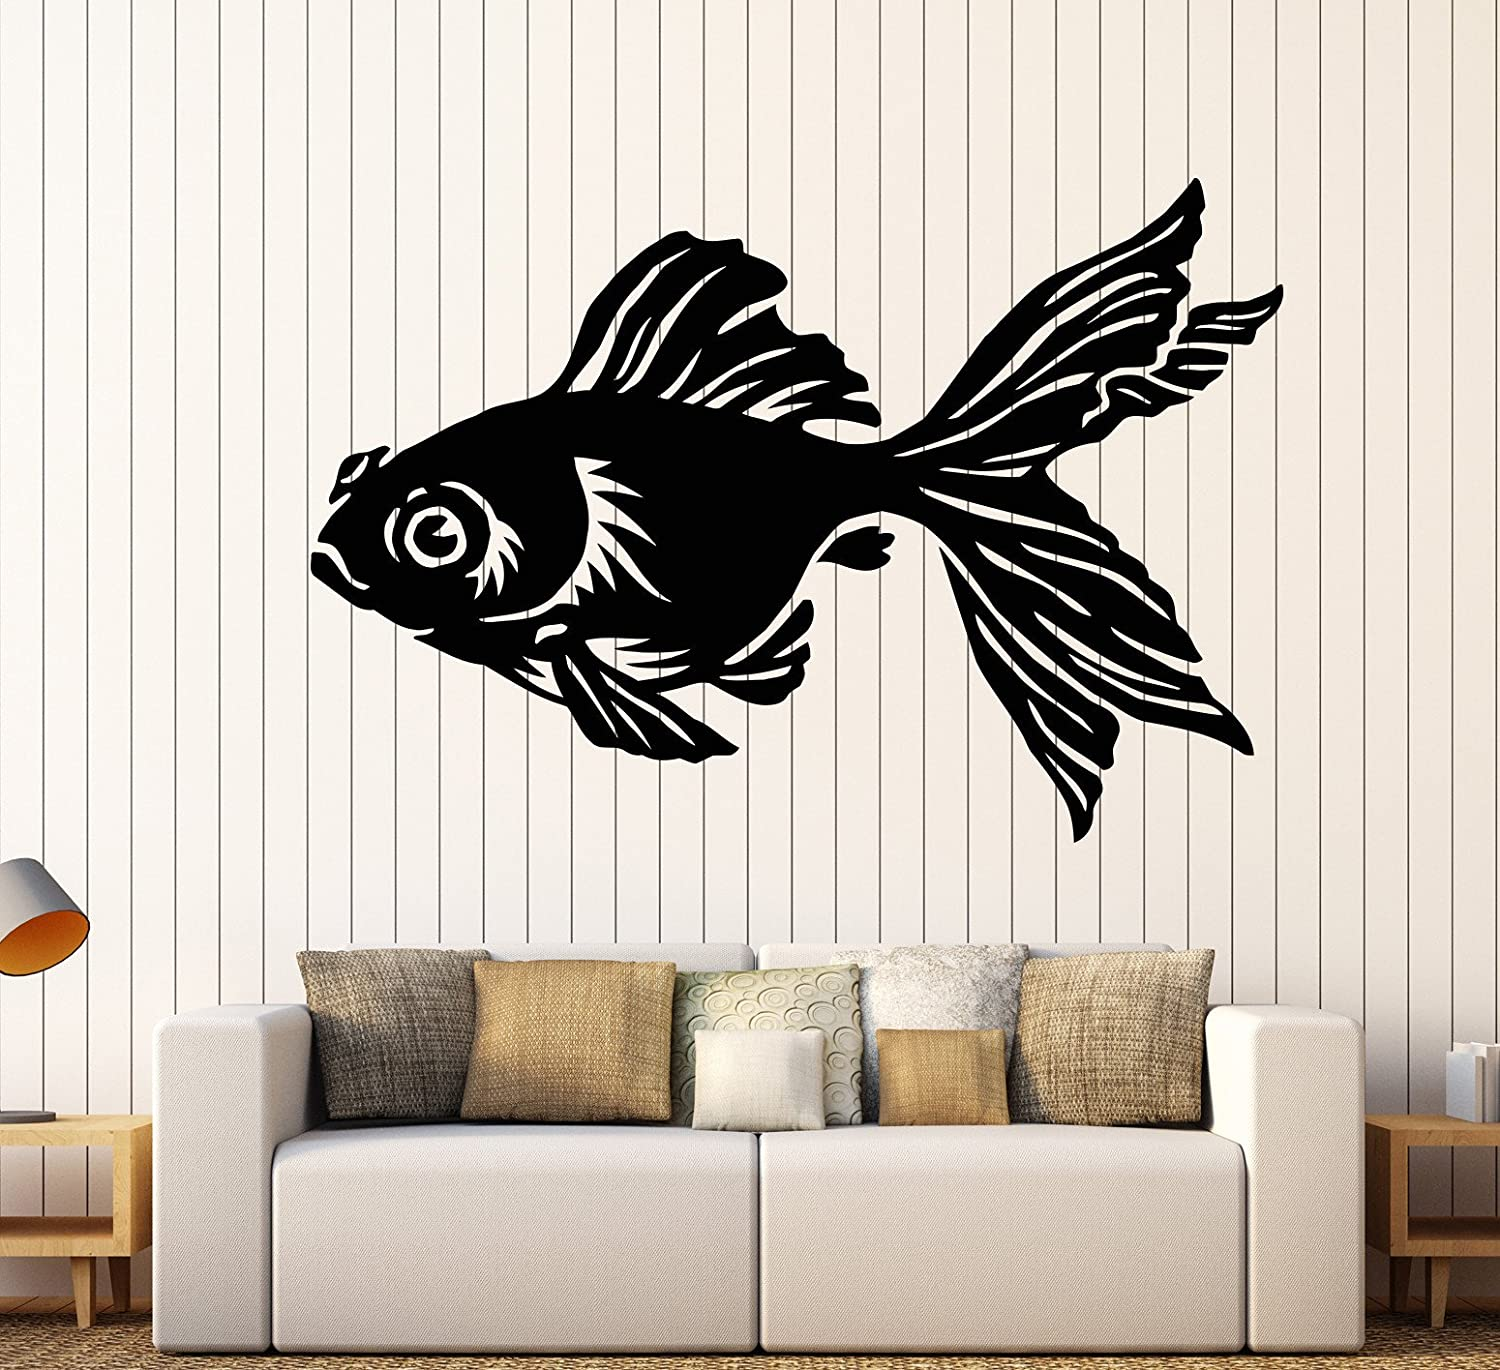 Vinyl Wall Decal Gold Chinese Fish Animal Aquarium Pet Stickers Large Decor (1086ig) Flame Red